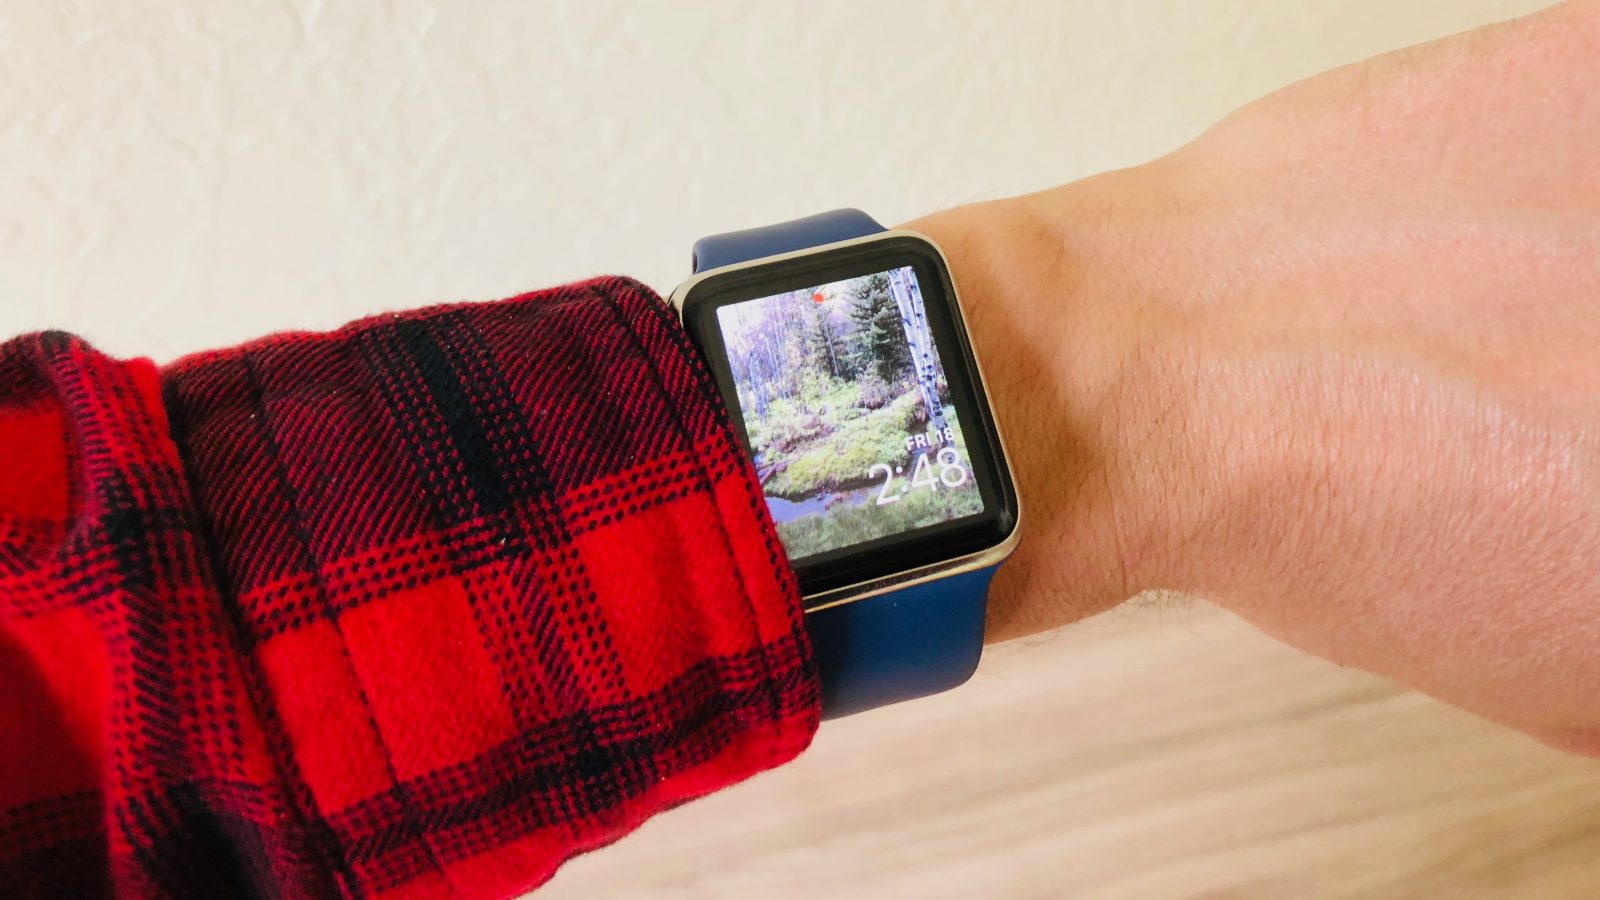 Apple Watch: How to set photo as watch